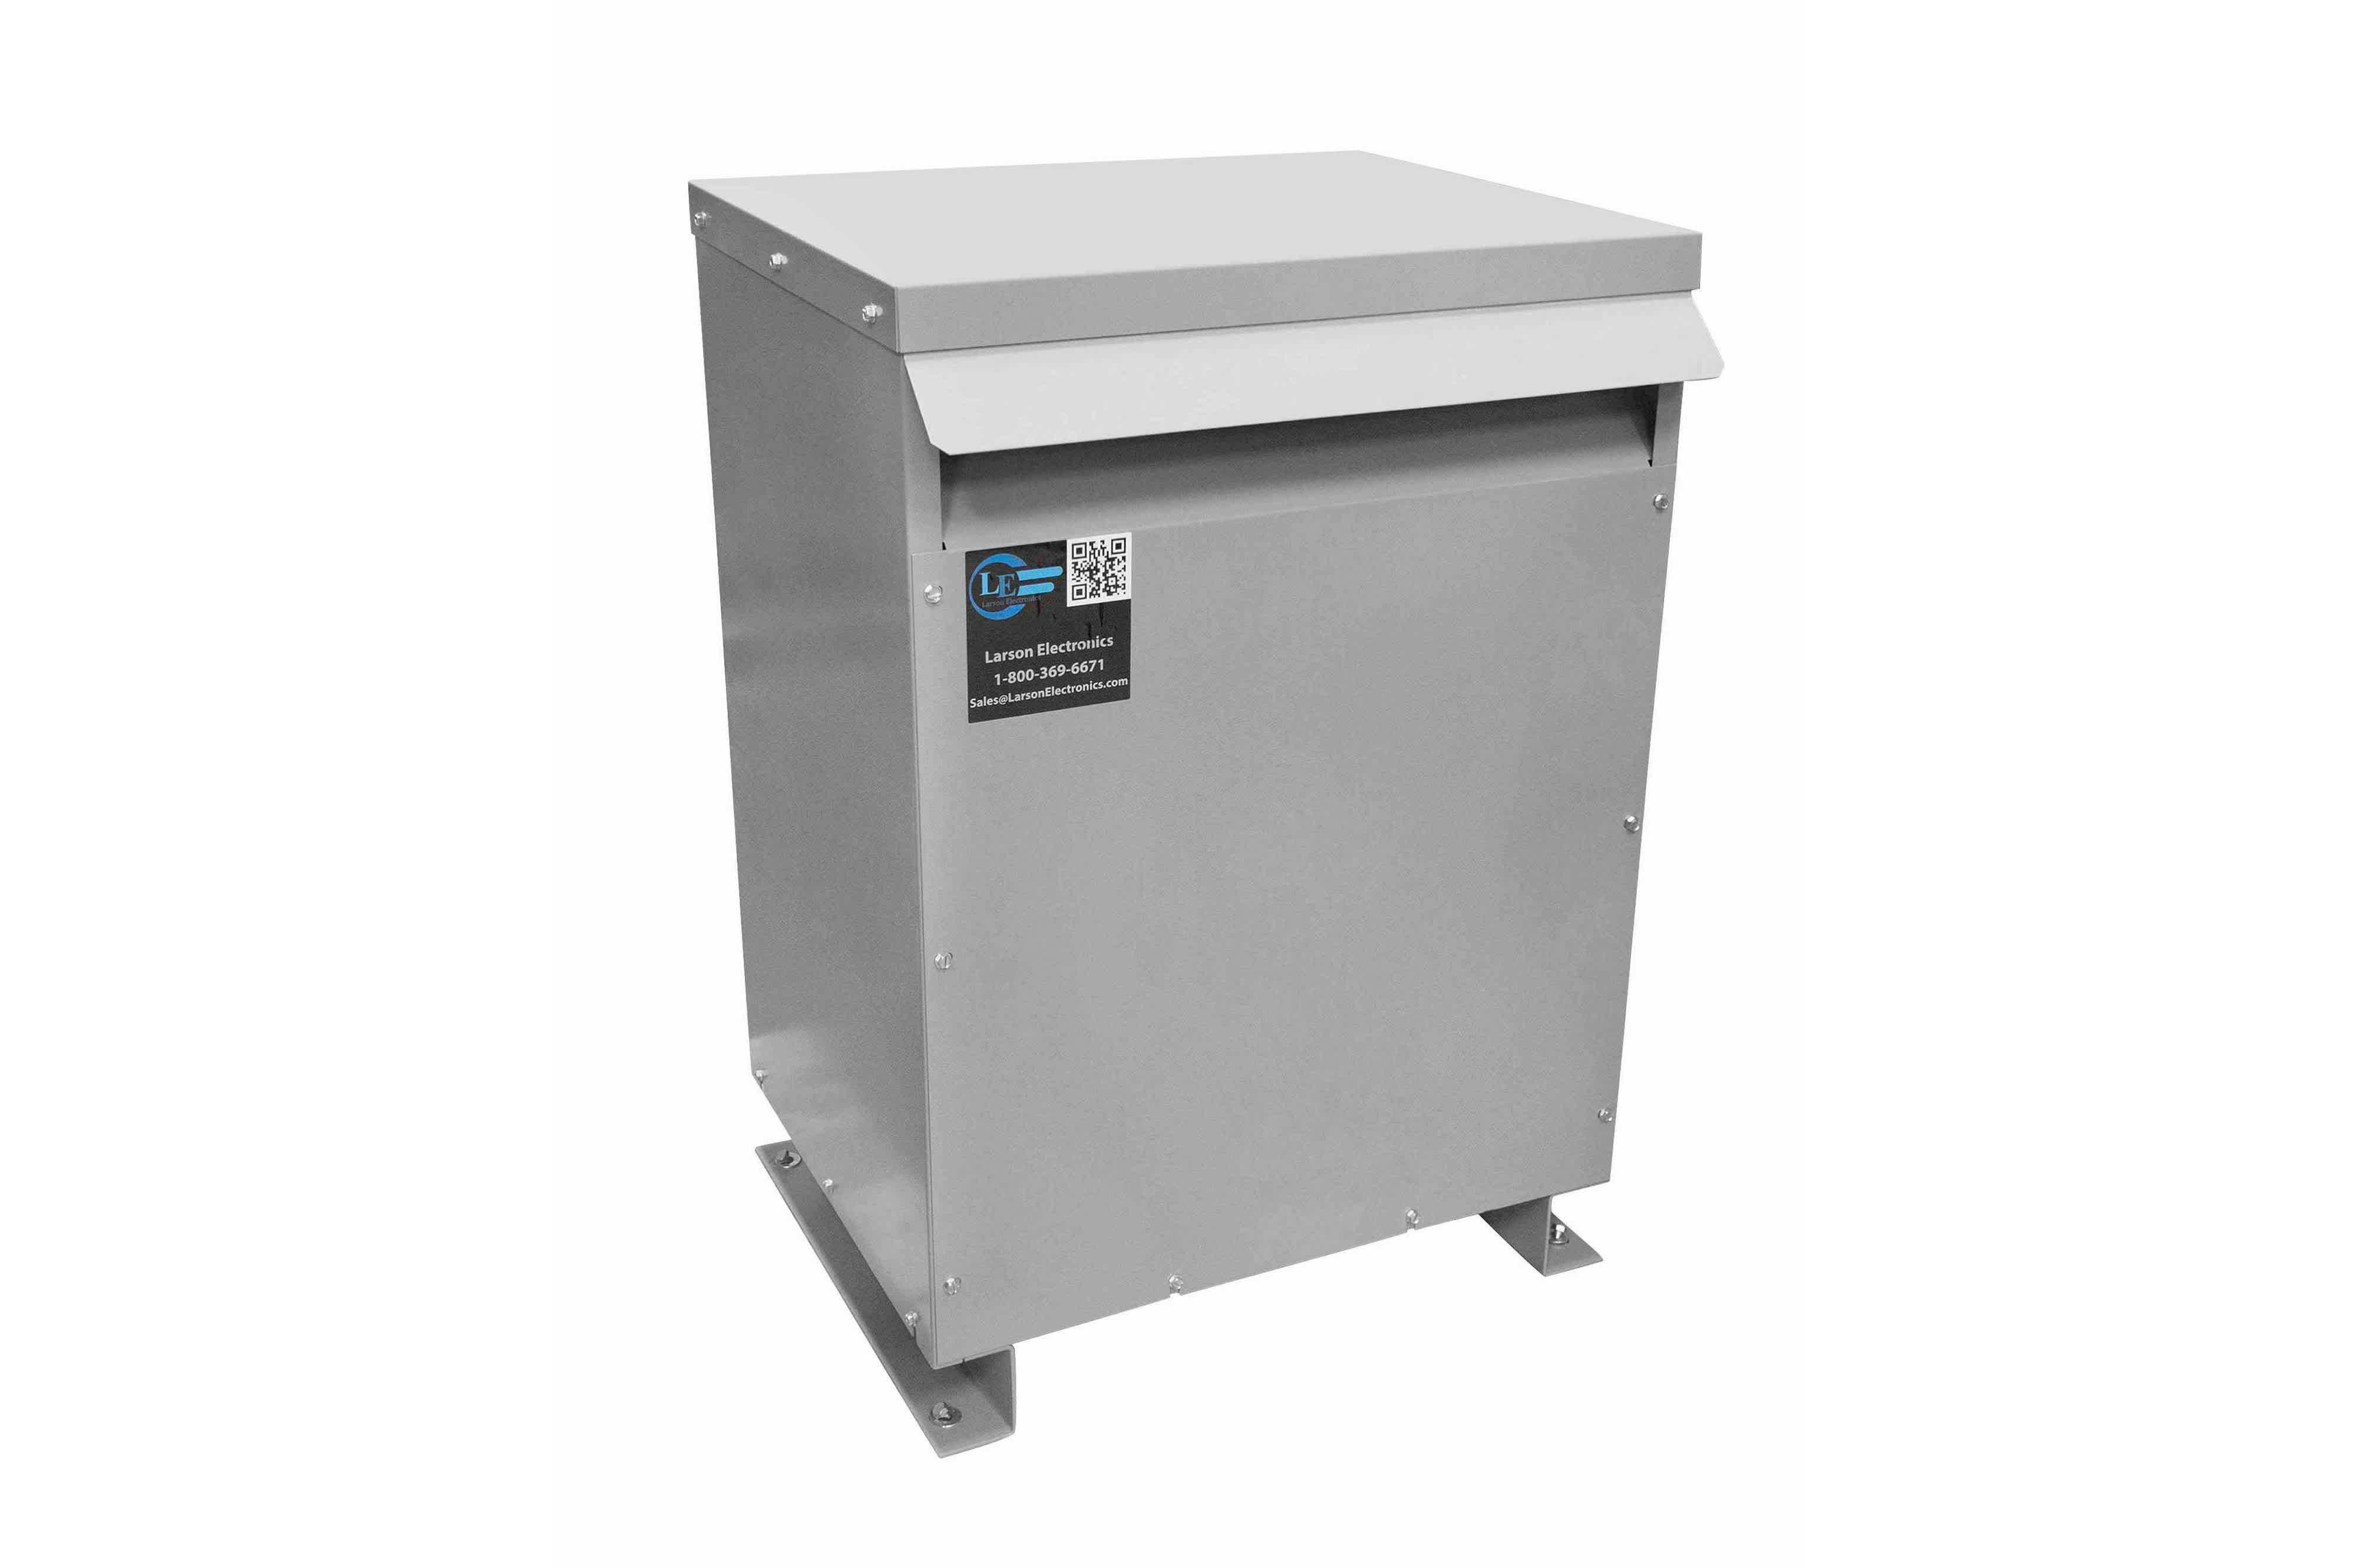 12 kVA 3PH DOE Transformer, 240V Delta Primary, 415Y/240 Wye-N Secondary, N3R, Ventilated, 60 Hz